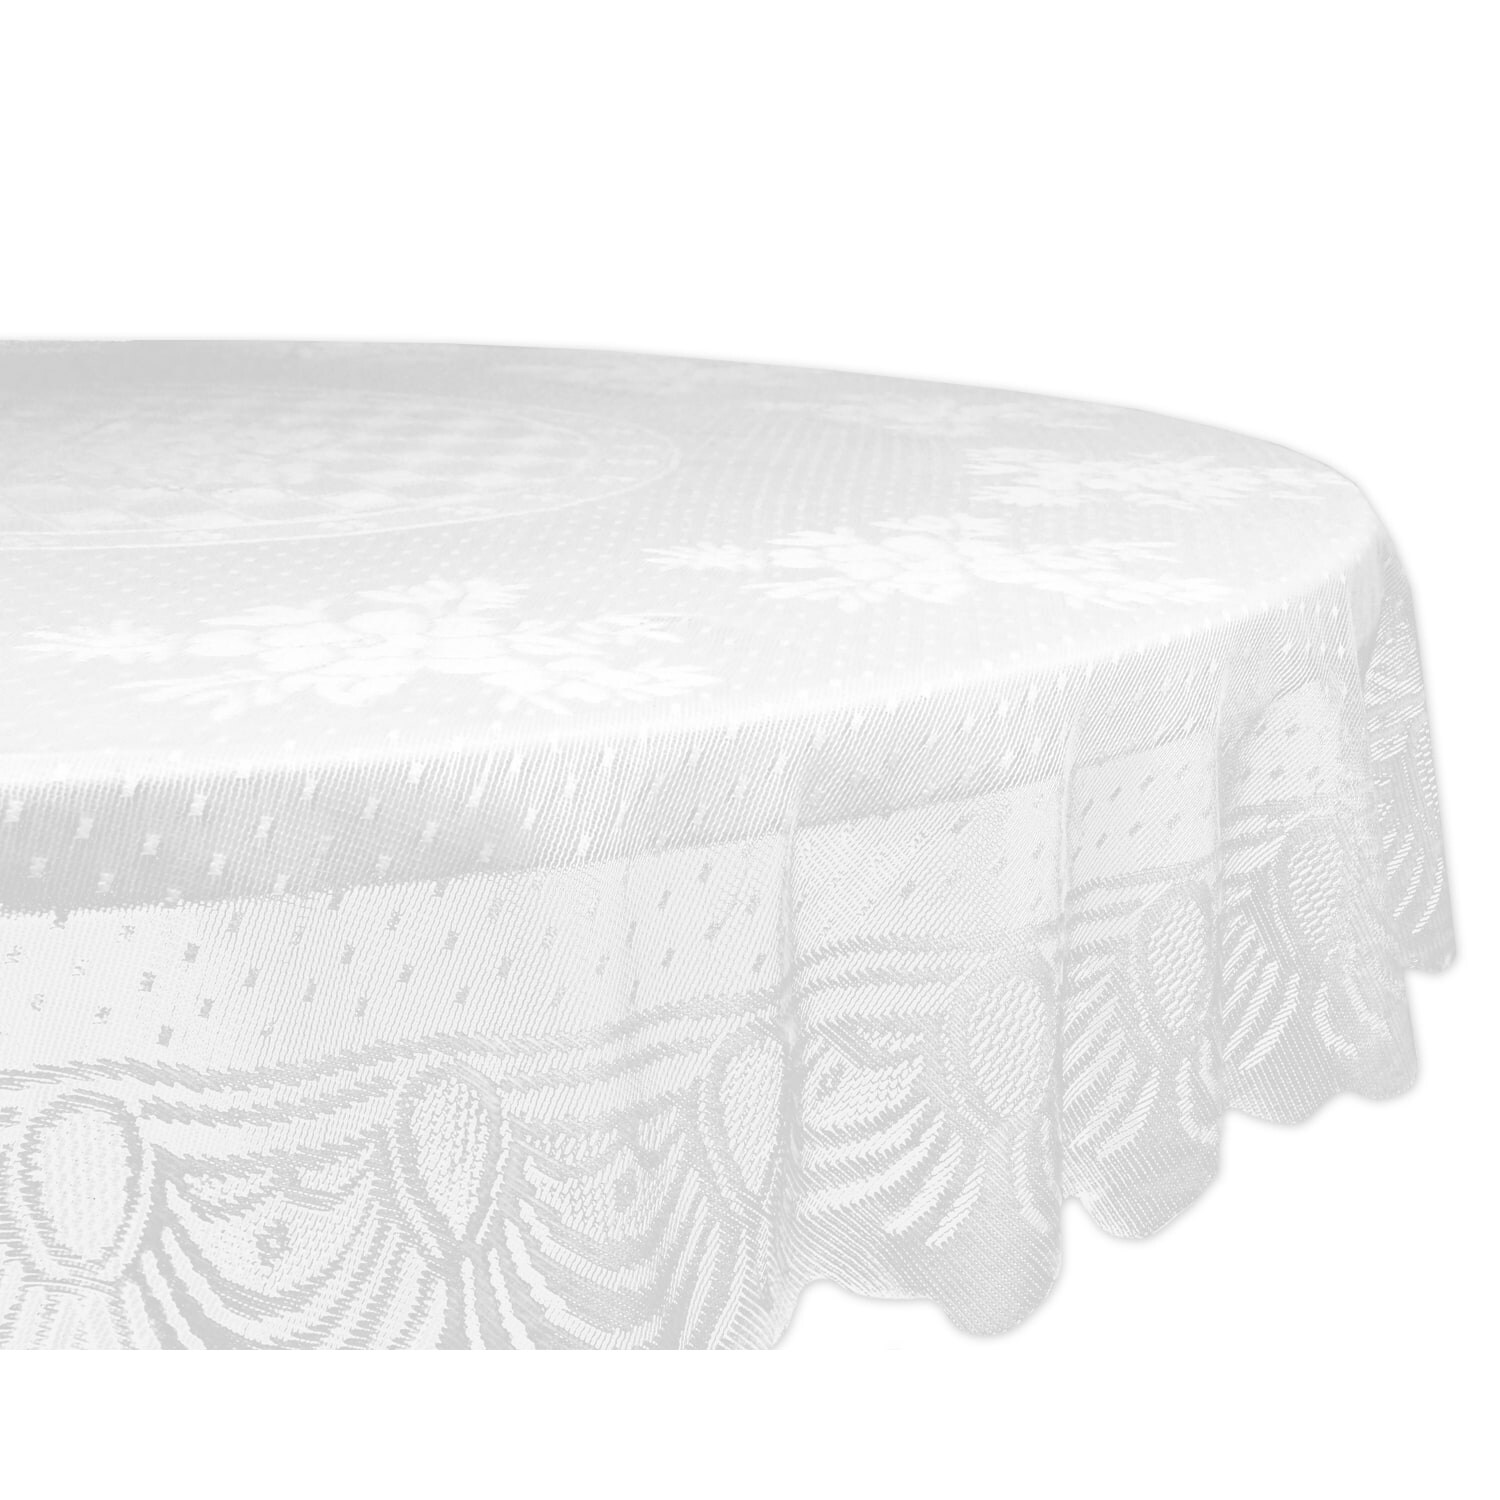 Design Imports Lace Floral Poly Tablecloth (Round - Easte...